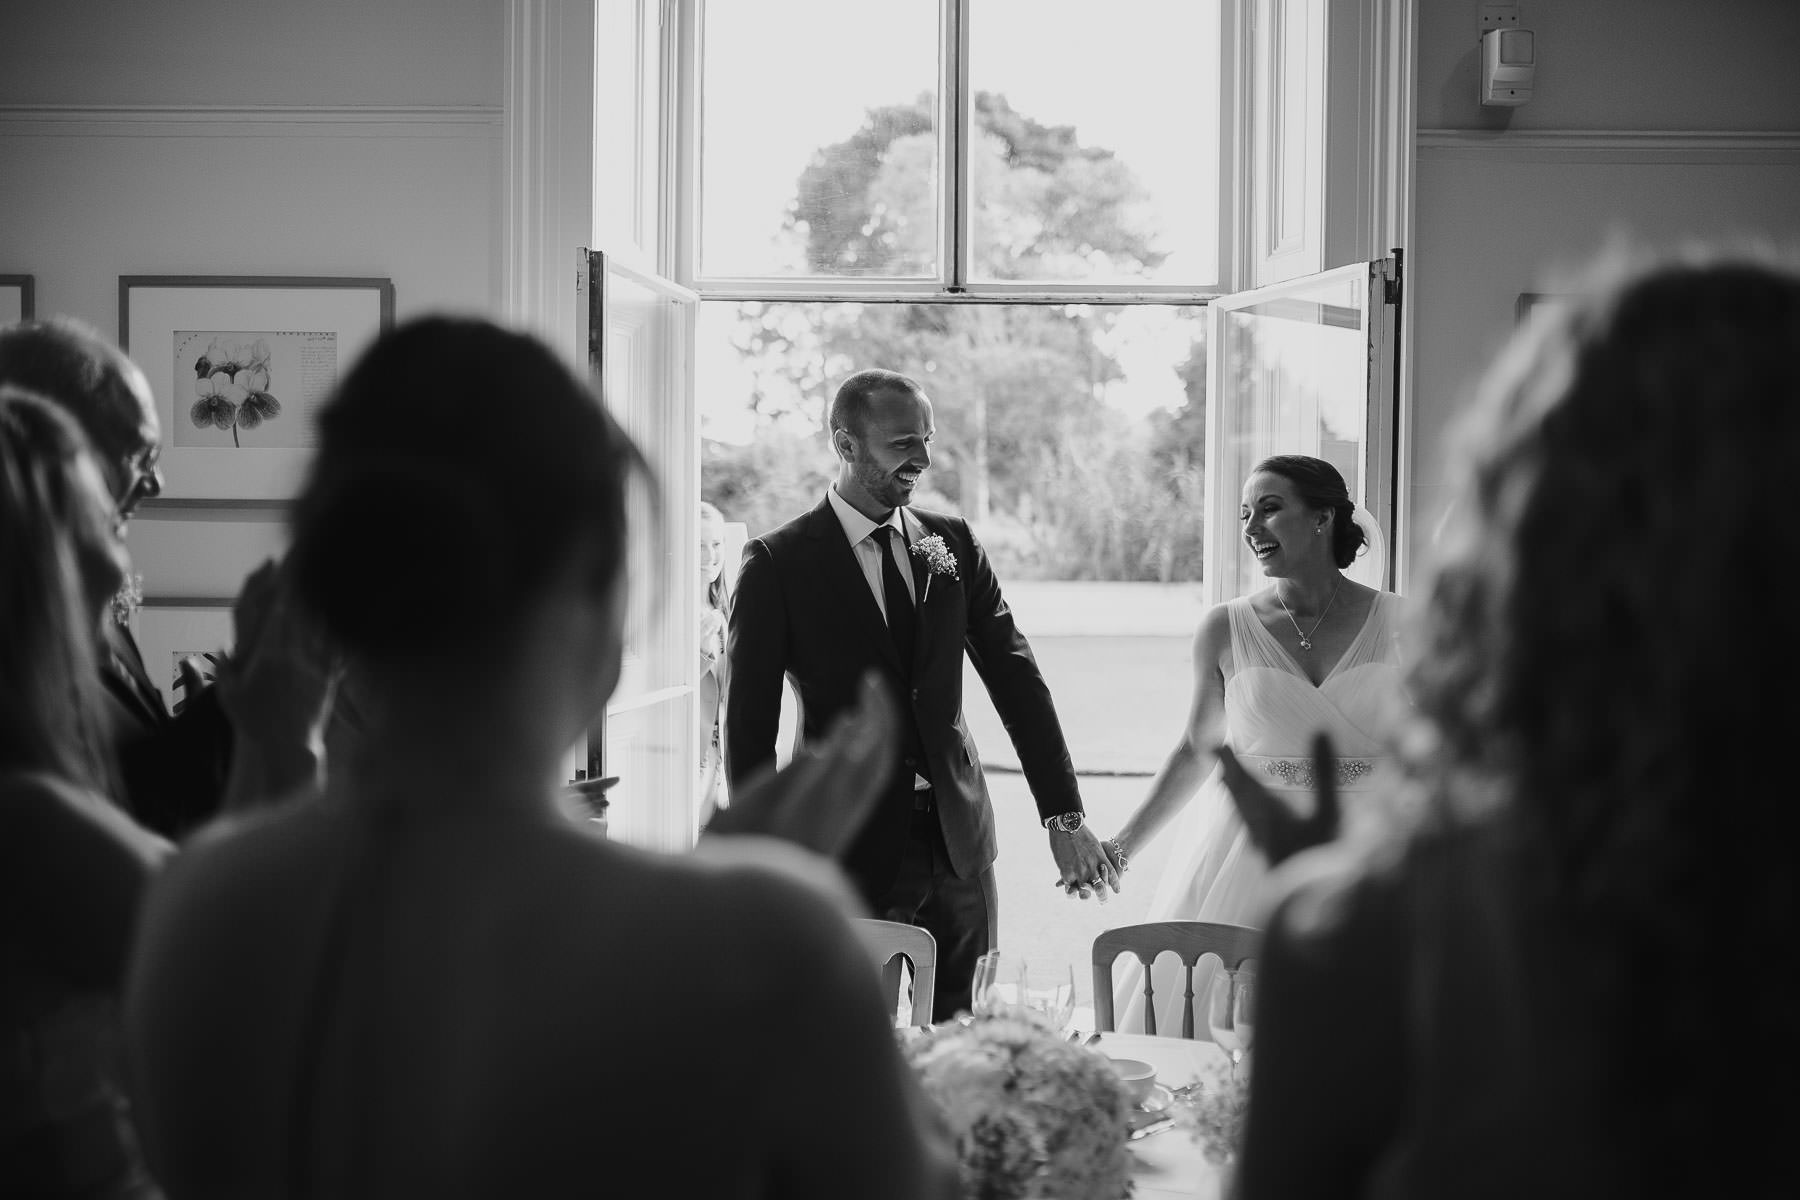 kew gardens wedding photography astra duncan49